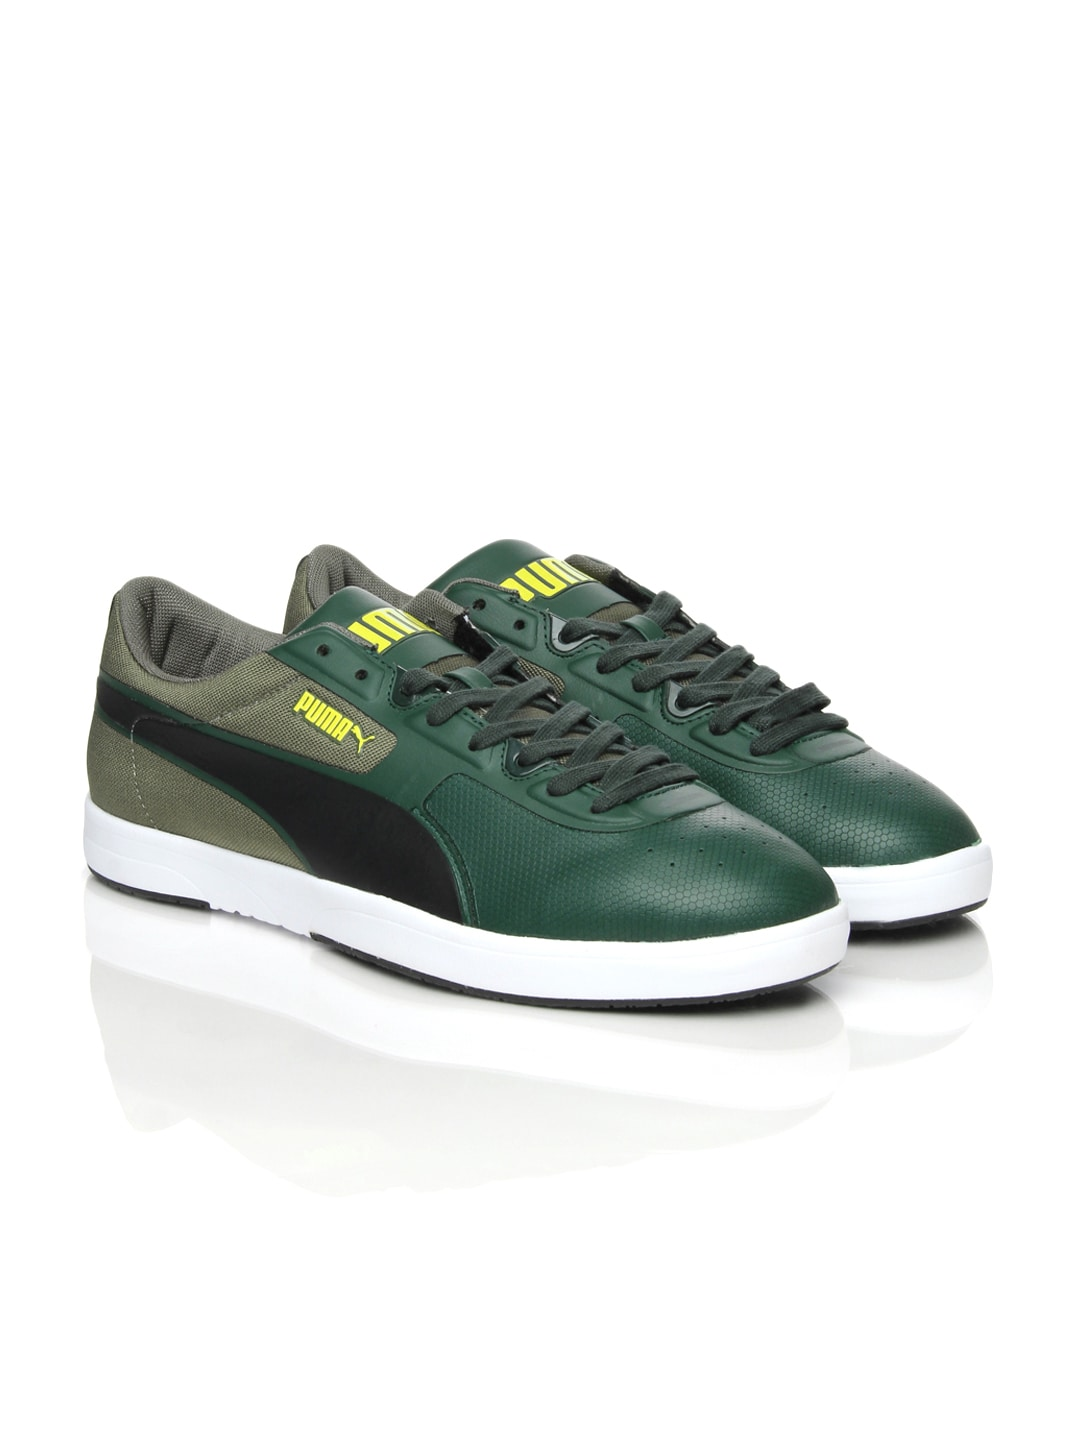 7e72b0c3f57 Puma 35694803 Men Green Future Brasil Lite Rugged Casual Shoes- Price in  India